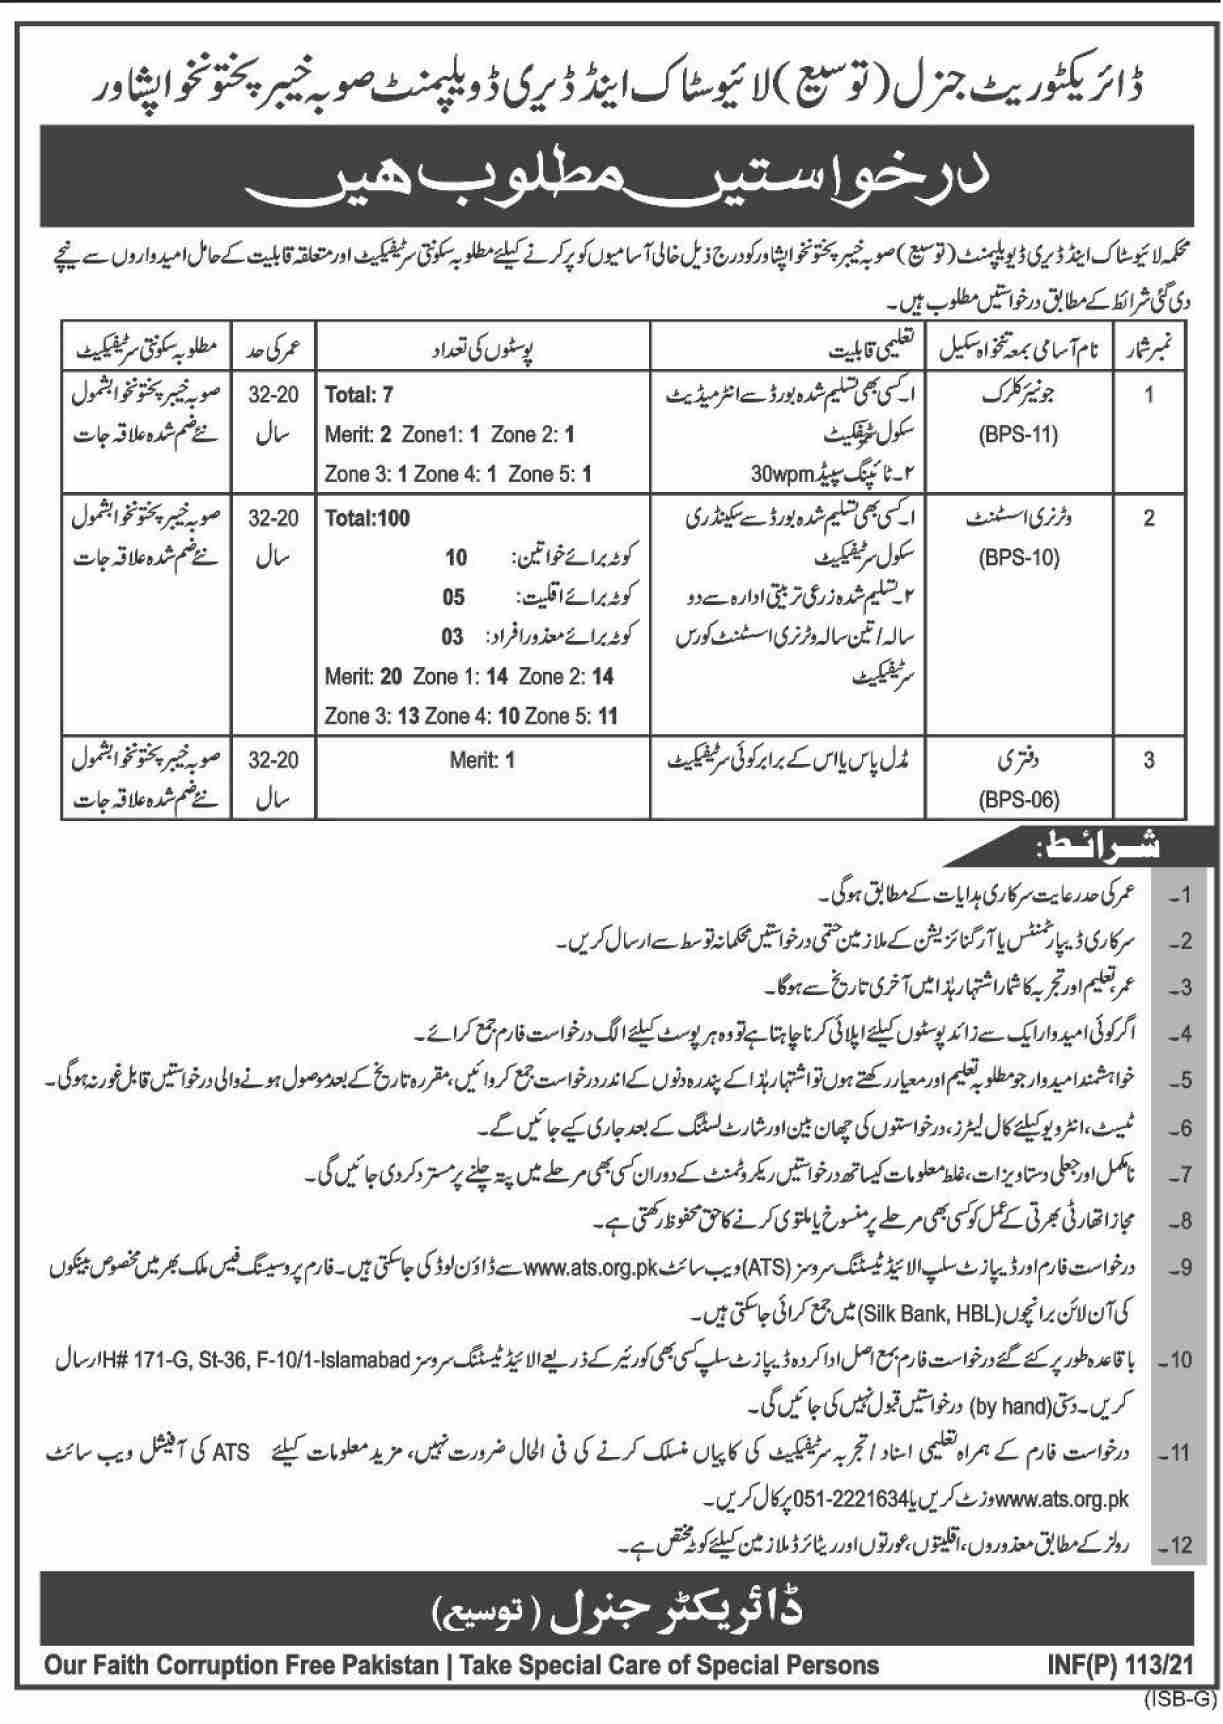 Livestock & Diary Development Department Jobs 2021 - KPK Directorate General Jobs 2021 - Download Application Form and Deposit Slip :- www.ats.org.pk